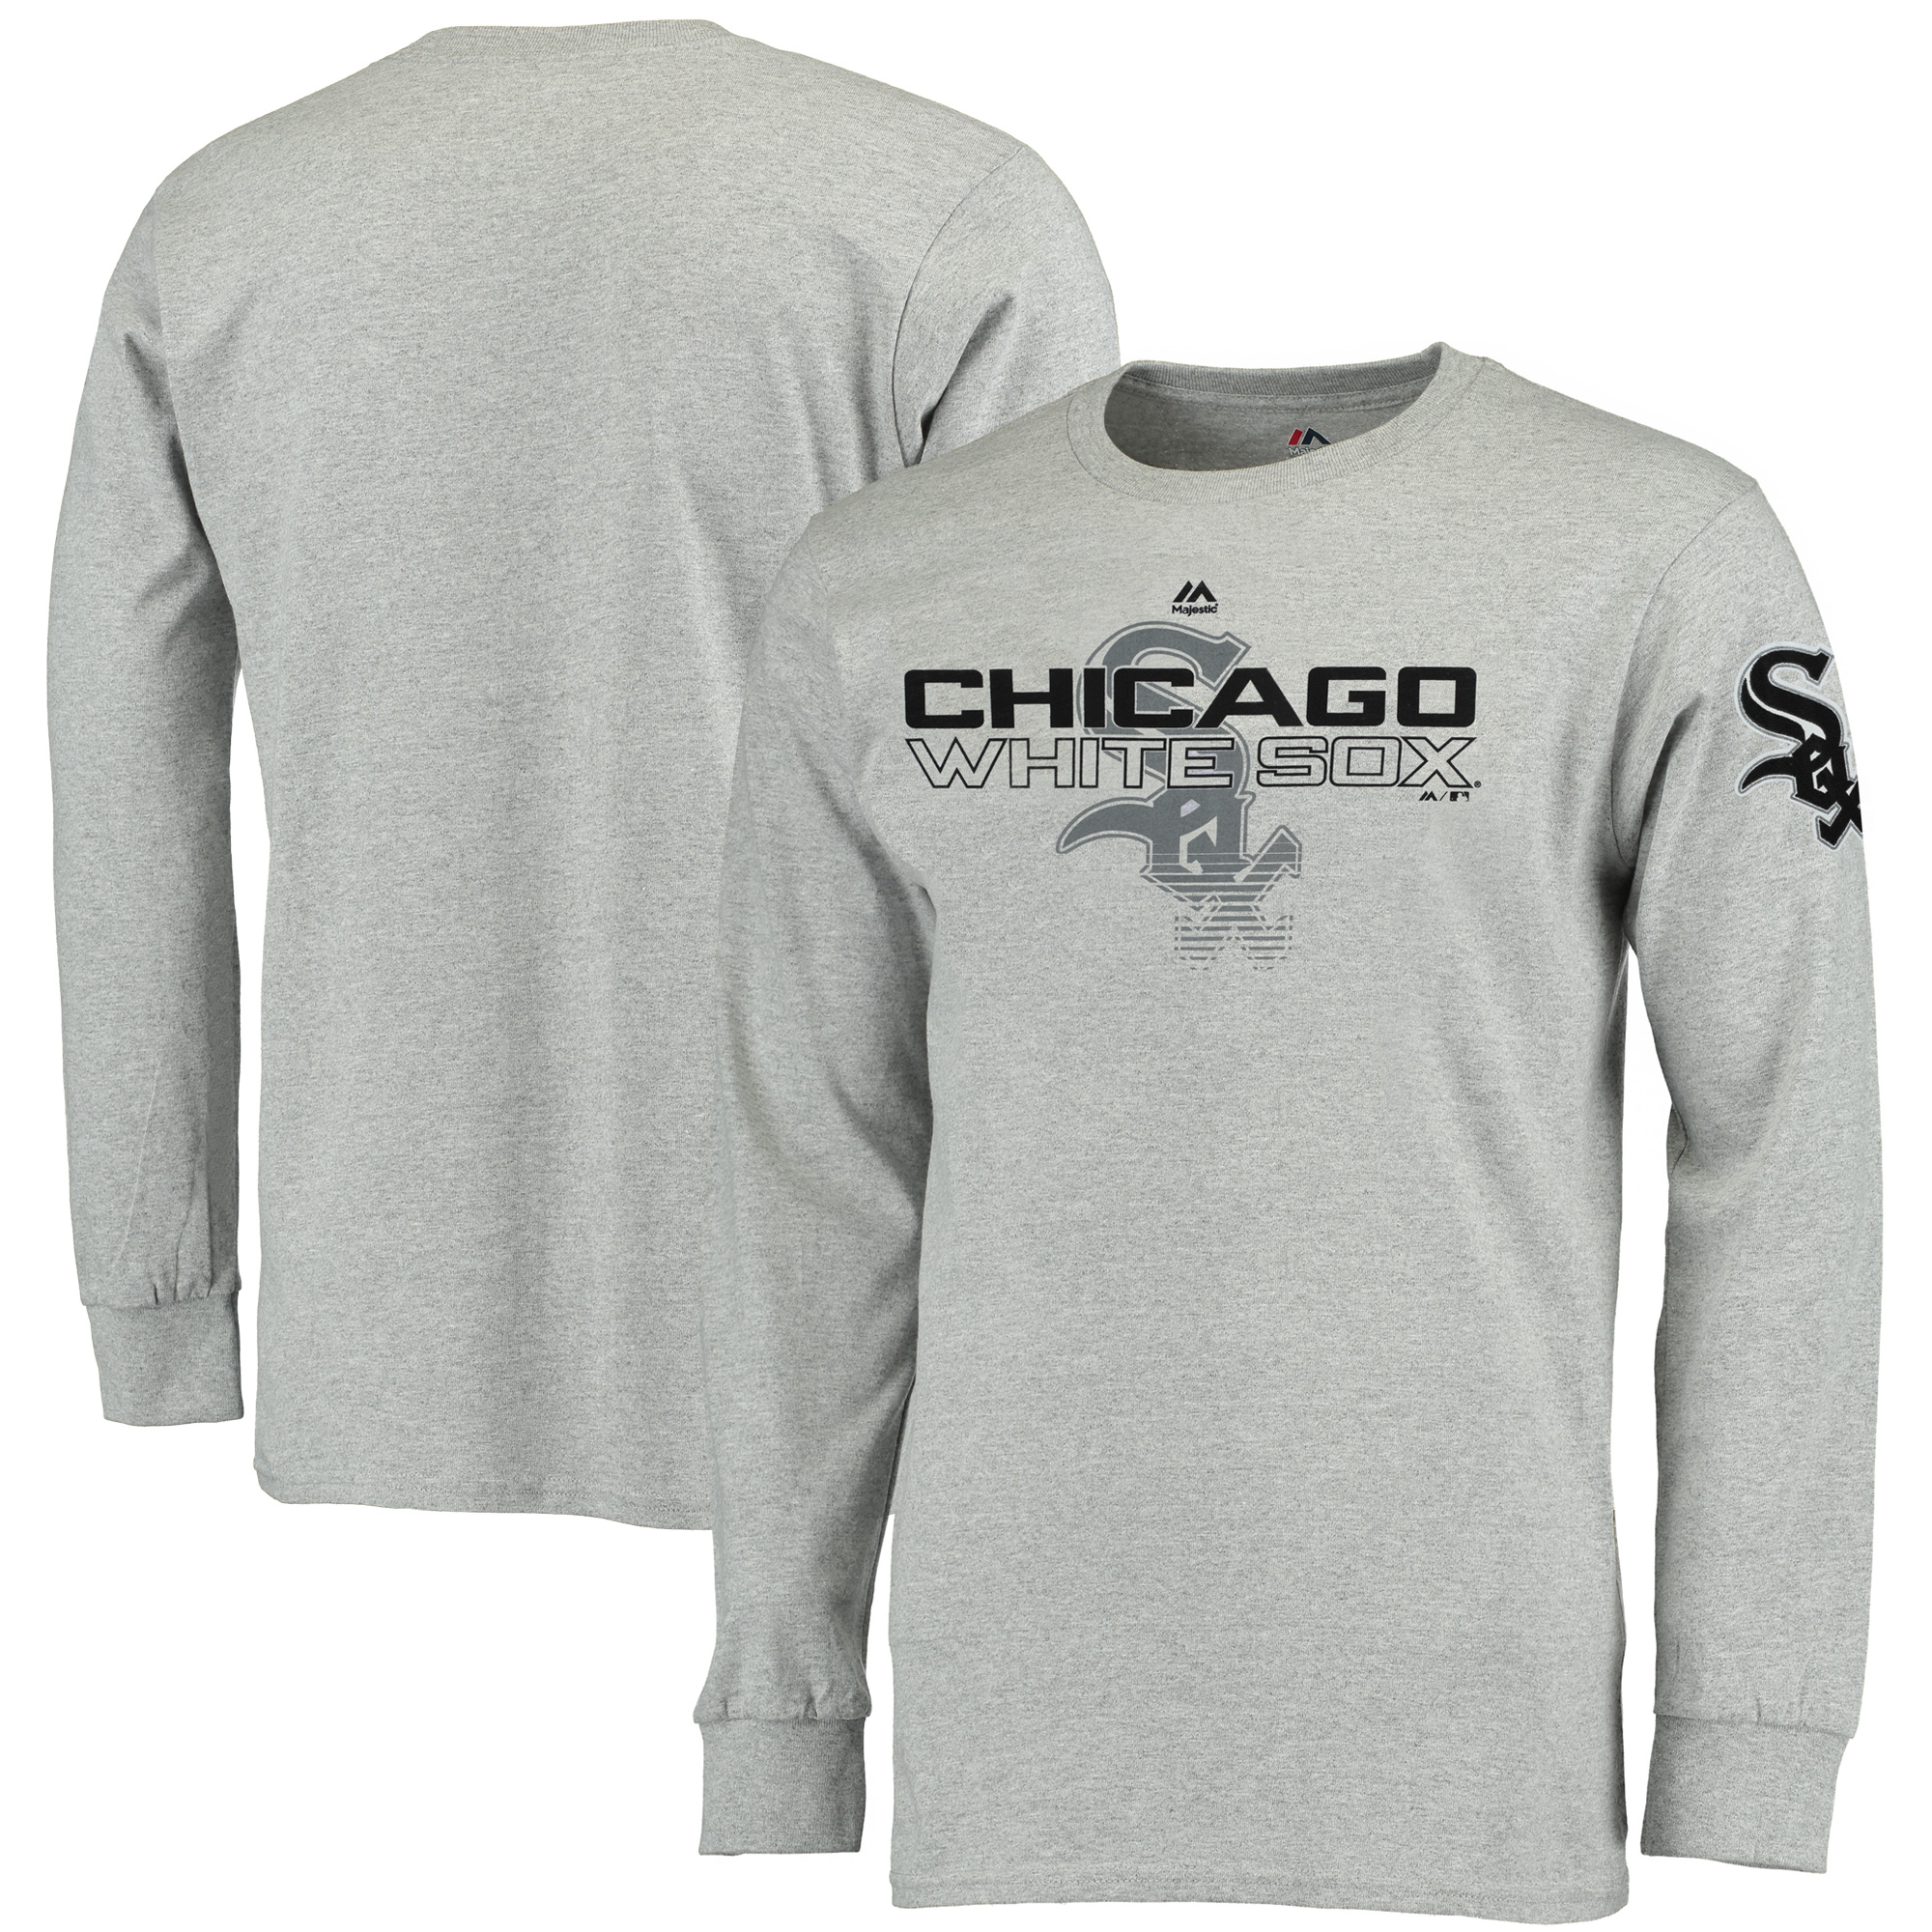 Chicago White Sox Majestic Big & Tall Two Hit Long Sleeve T-Shirt - Heathered Gray